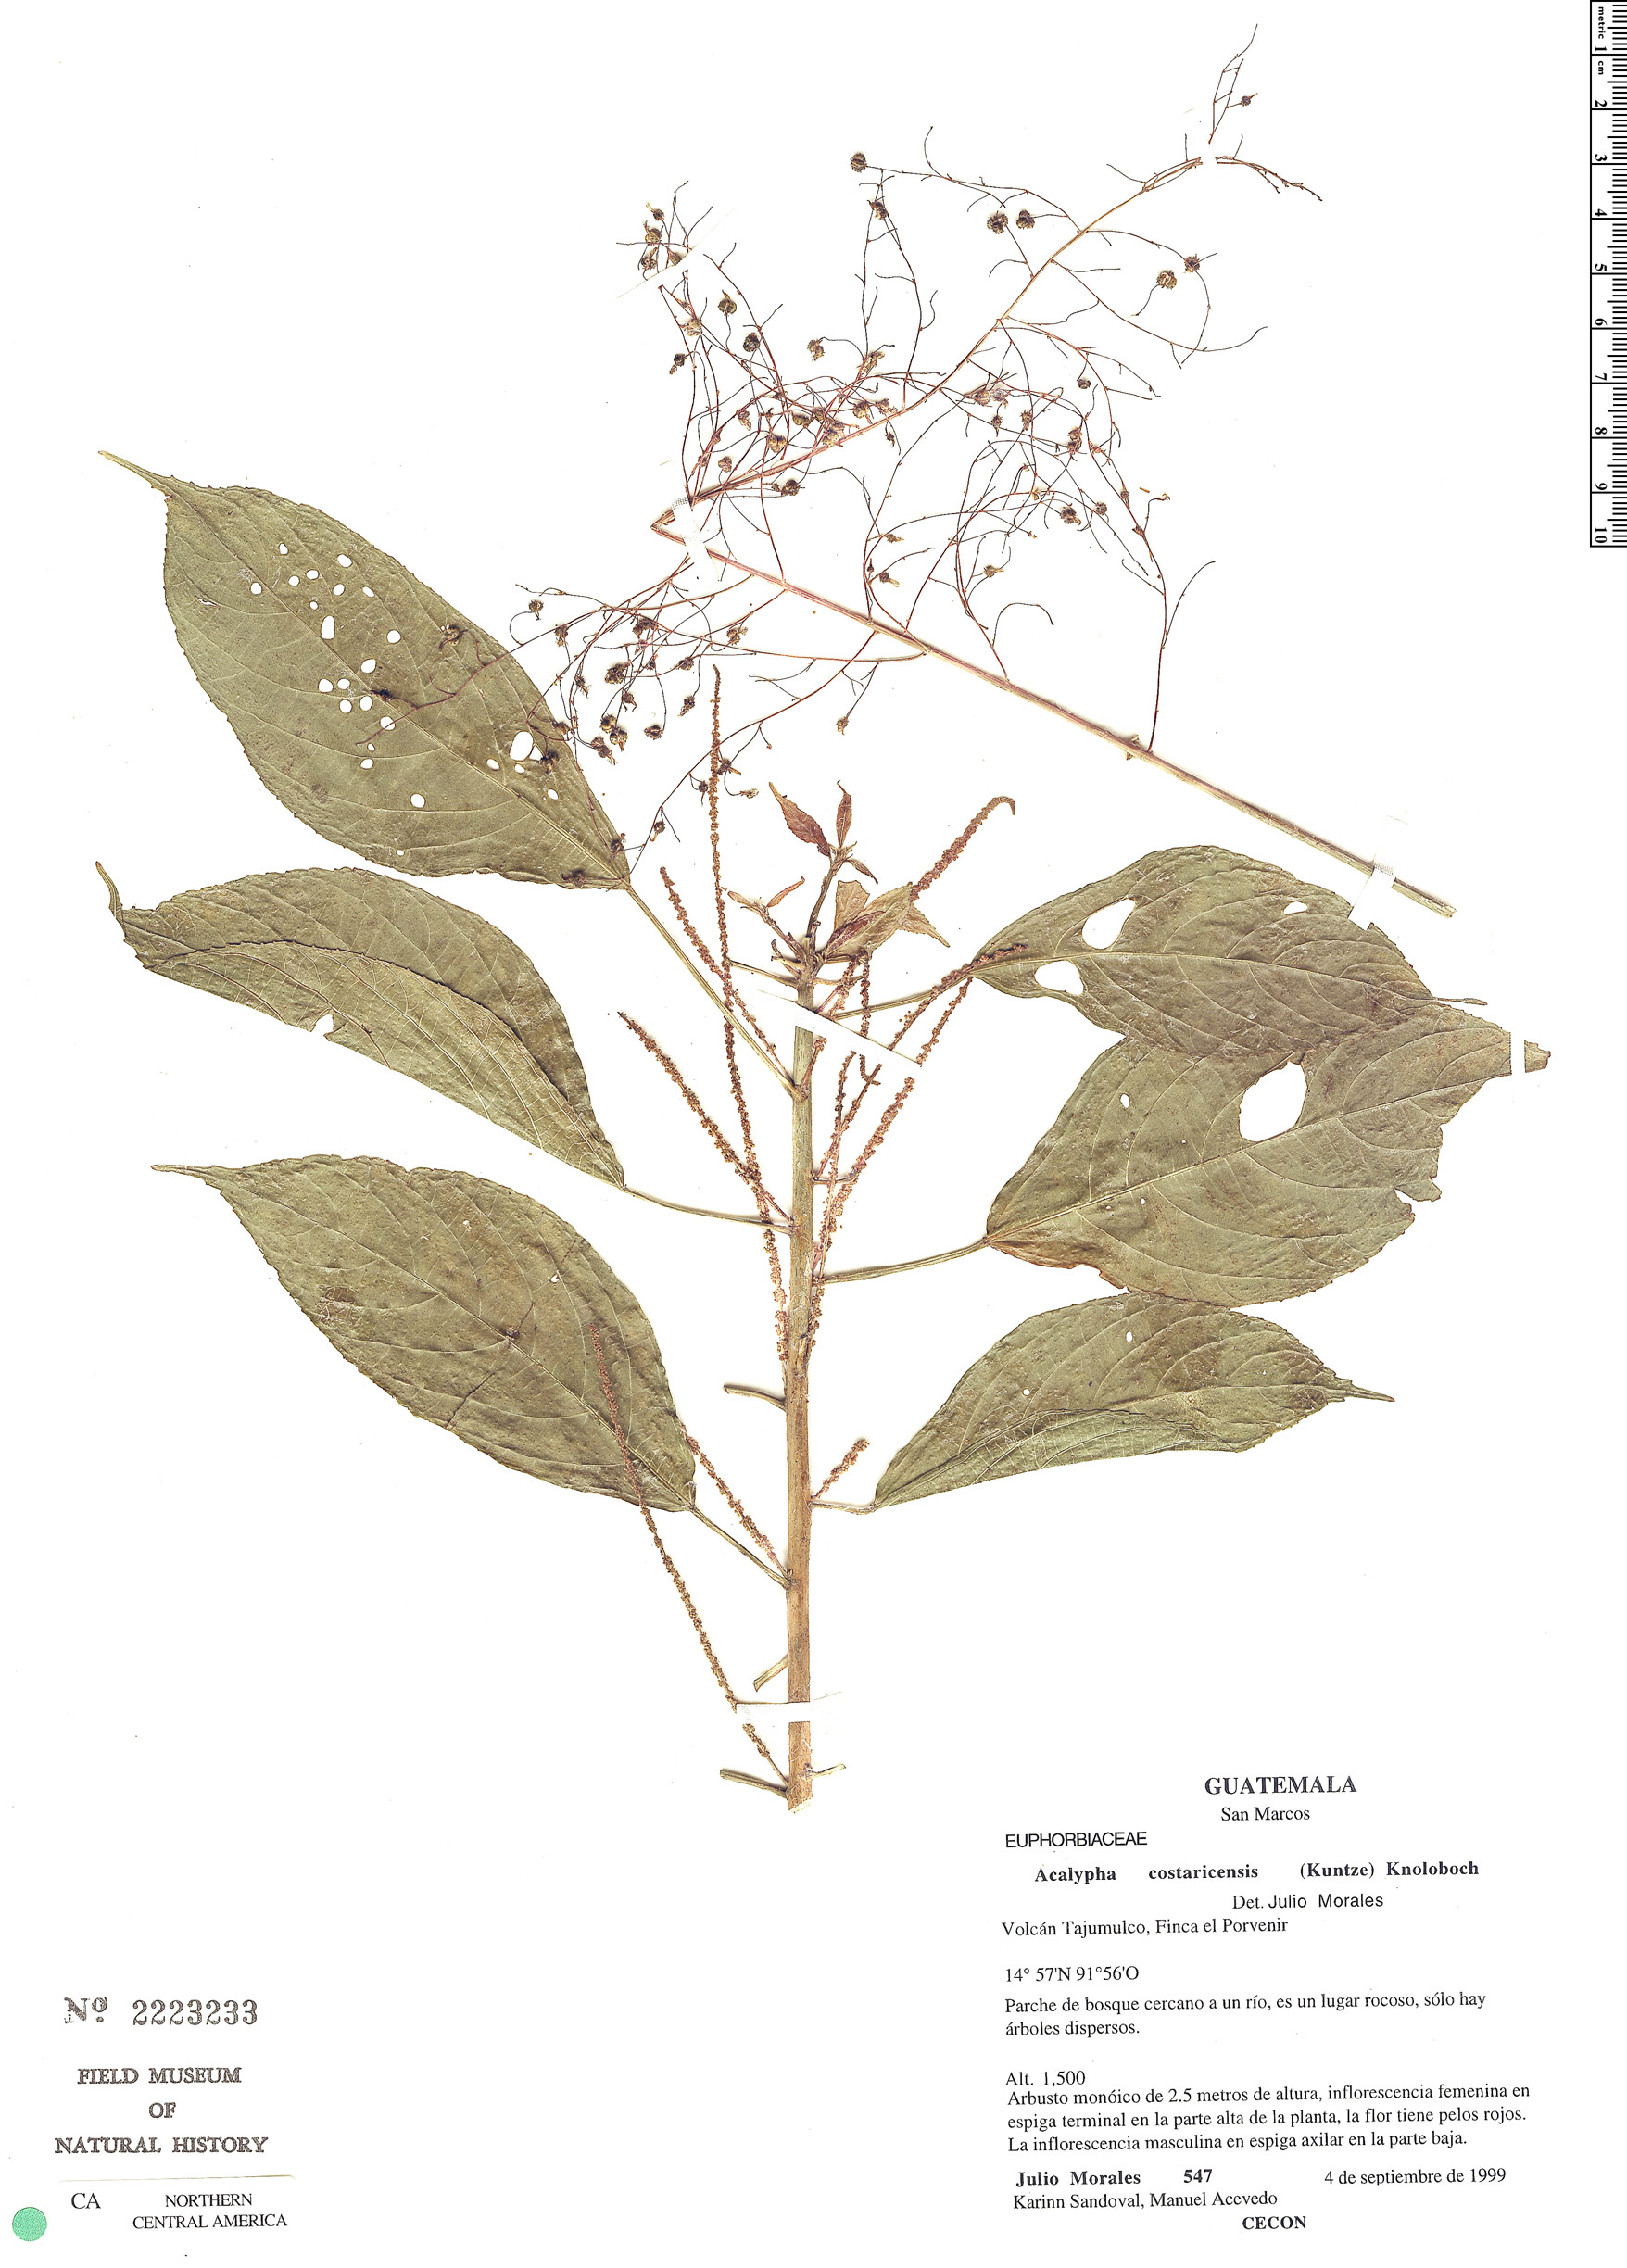 Acalypha costaricensis image